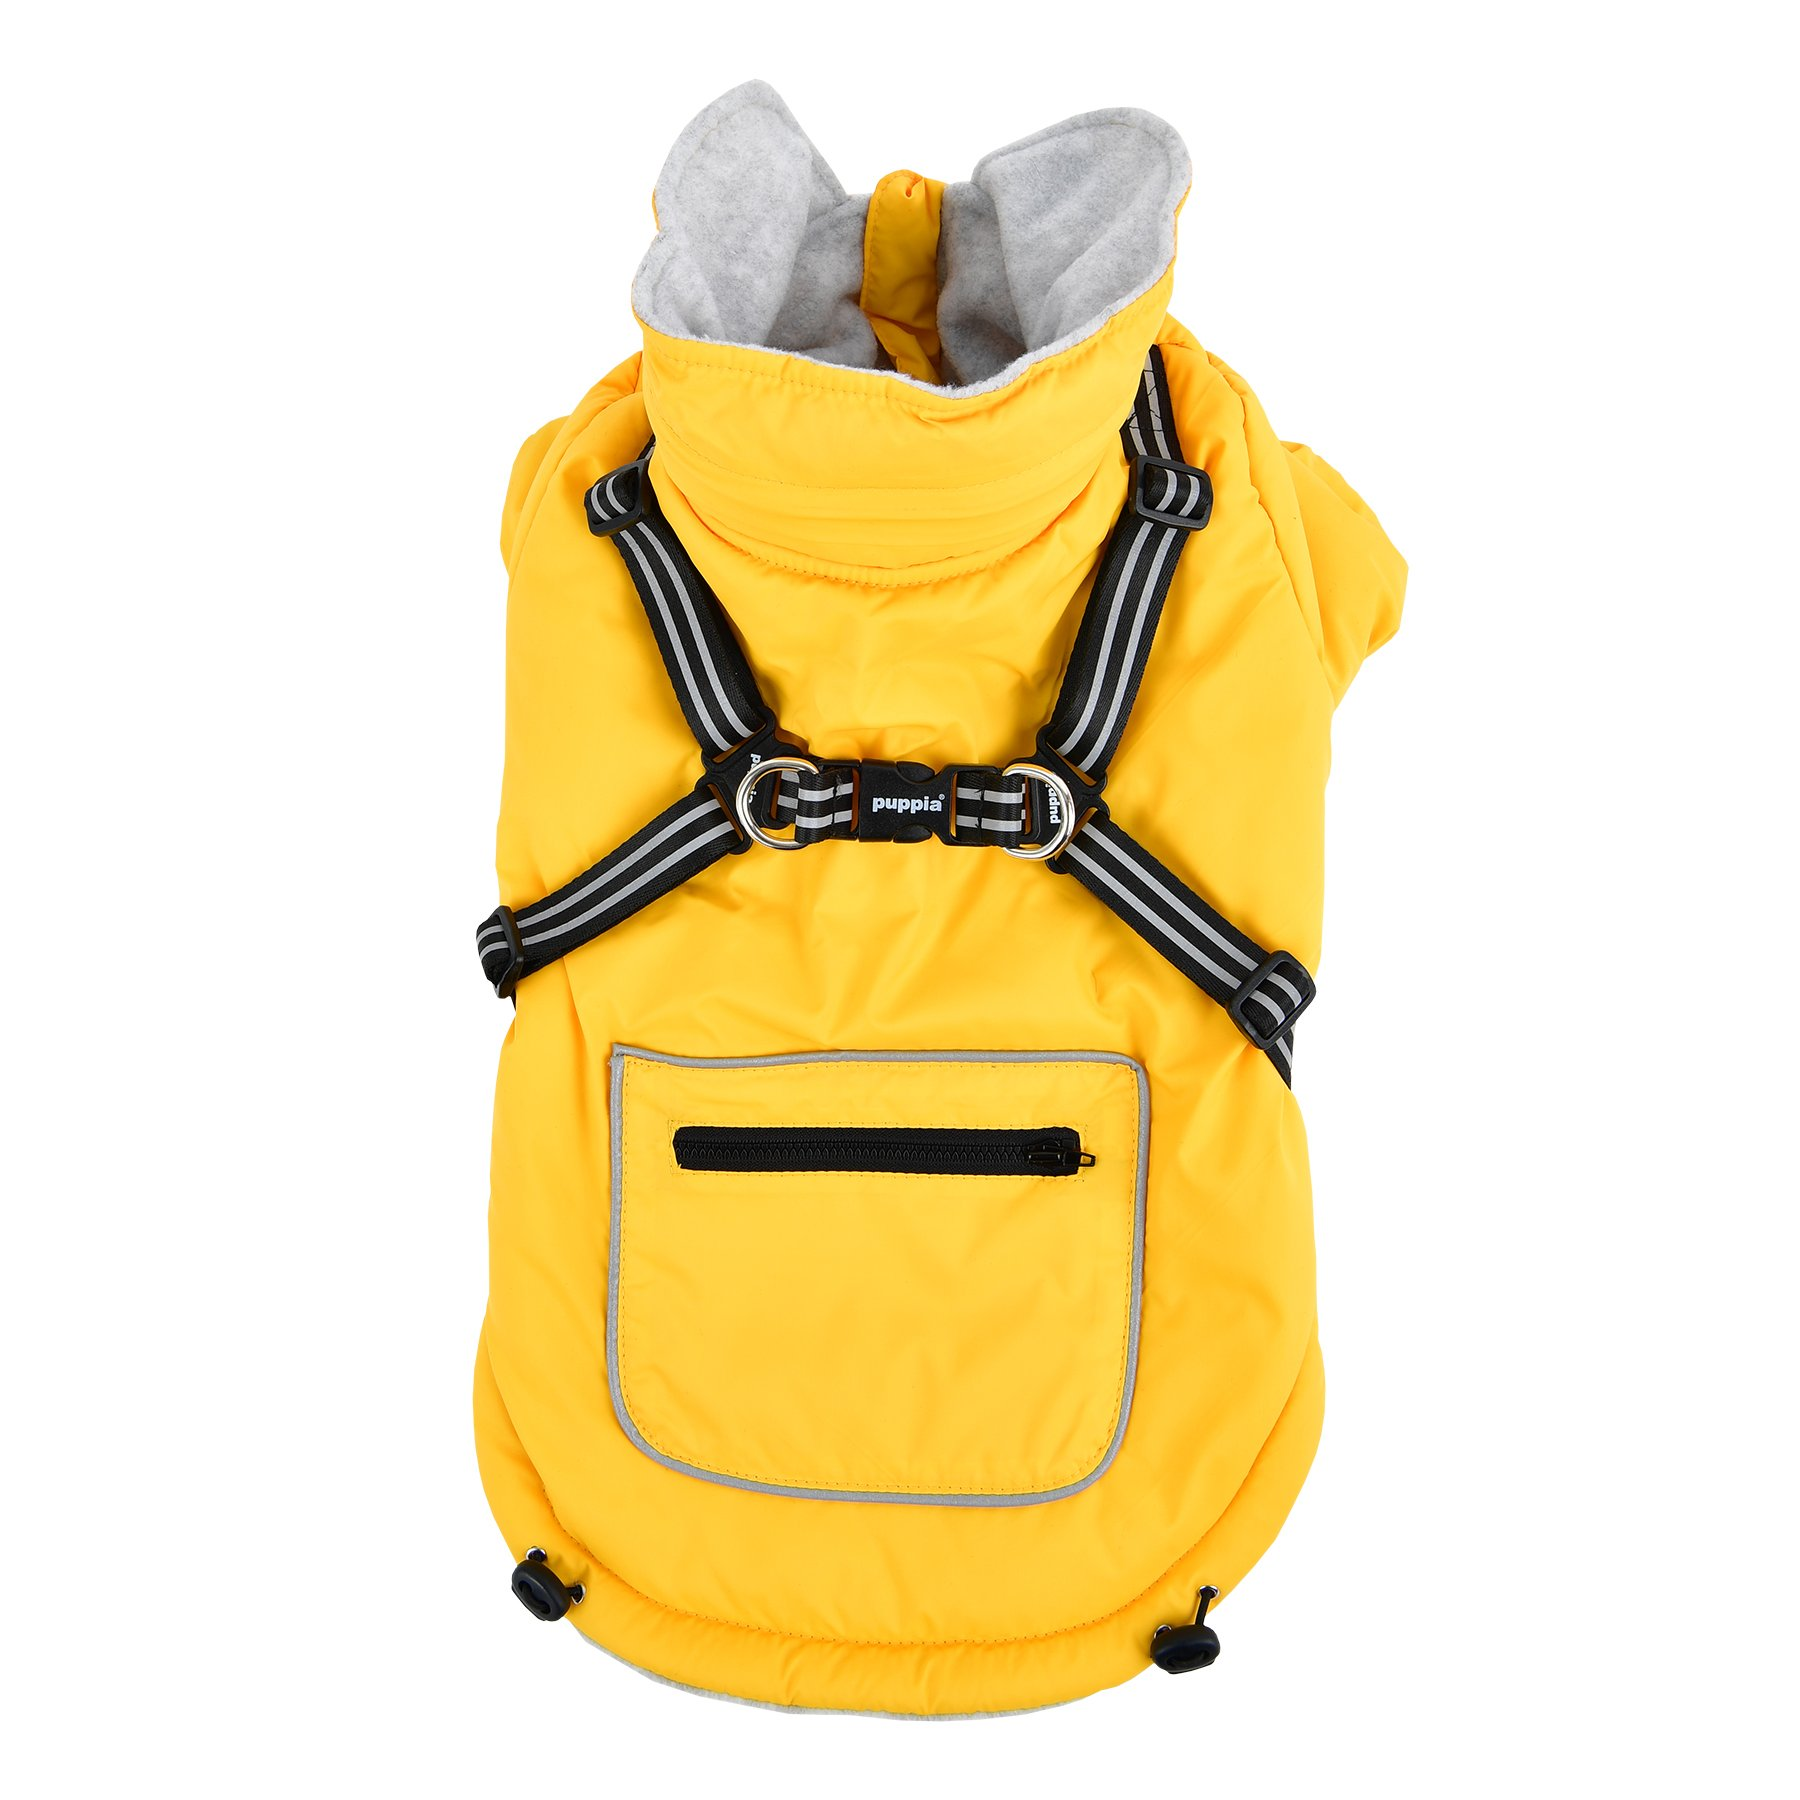 Puppia Mallory Pet Coat, X-Large, Yellow by Puppia